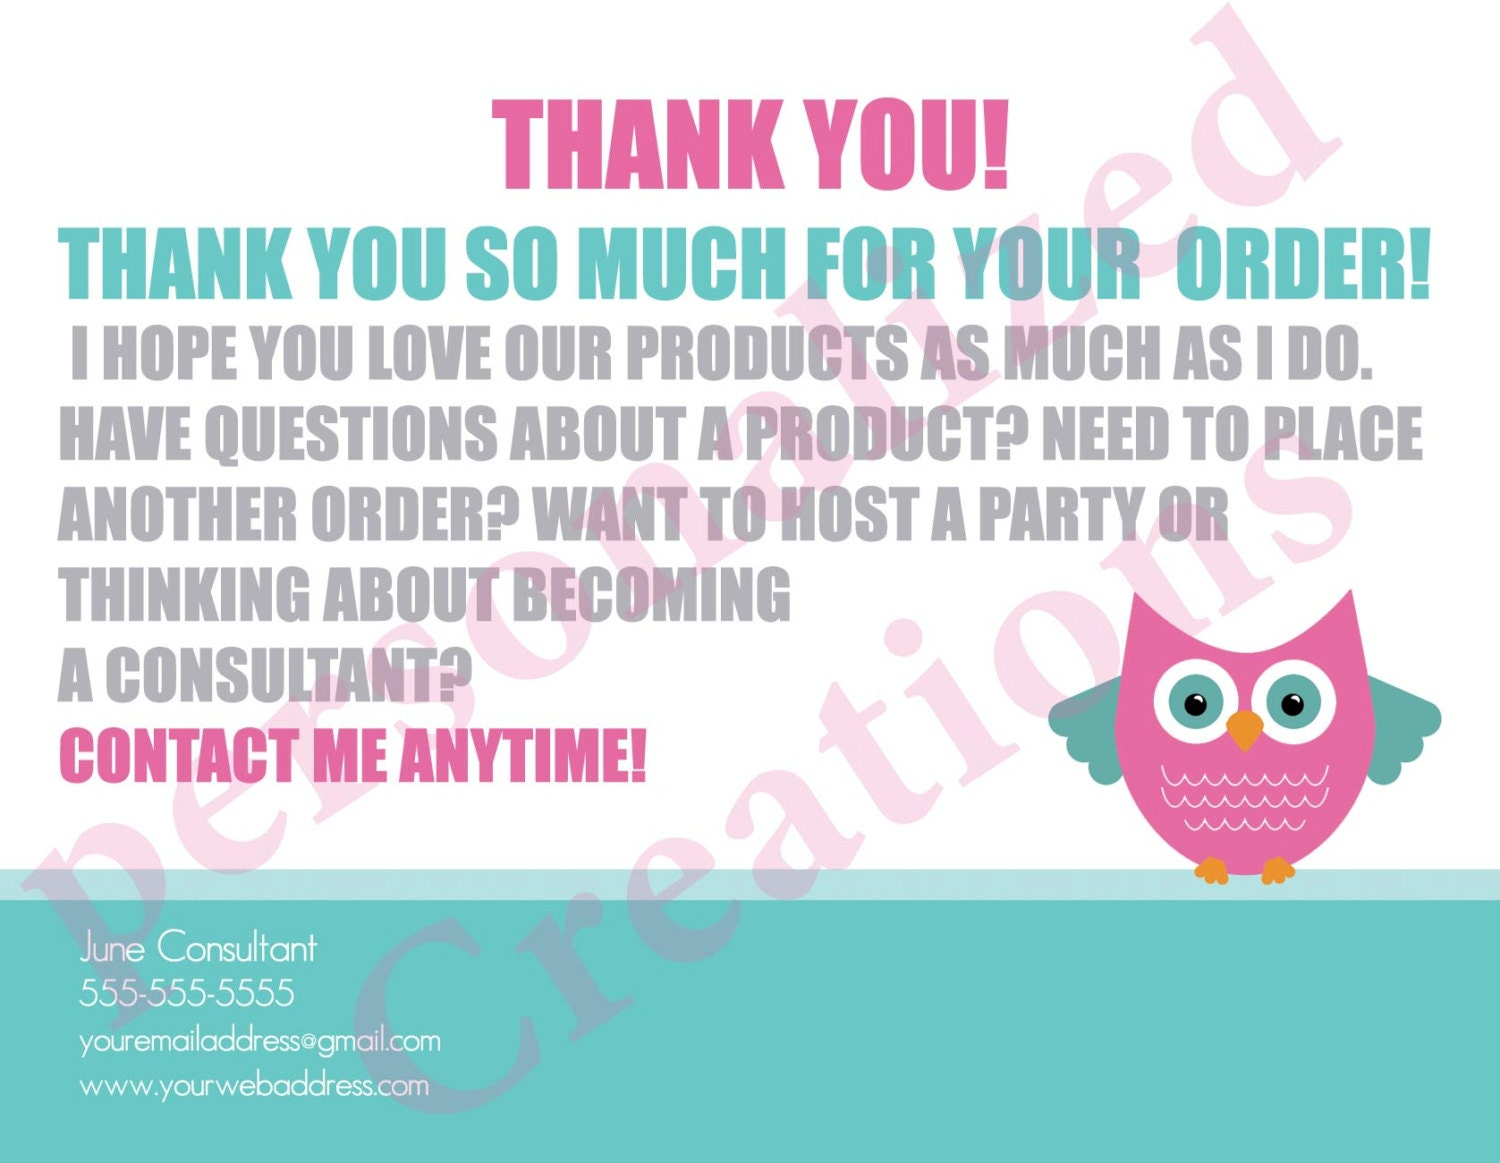 Personalized Thank You Cards made for Thirty-One Gifts